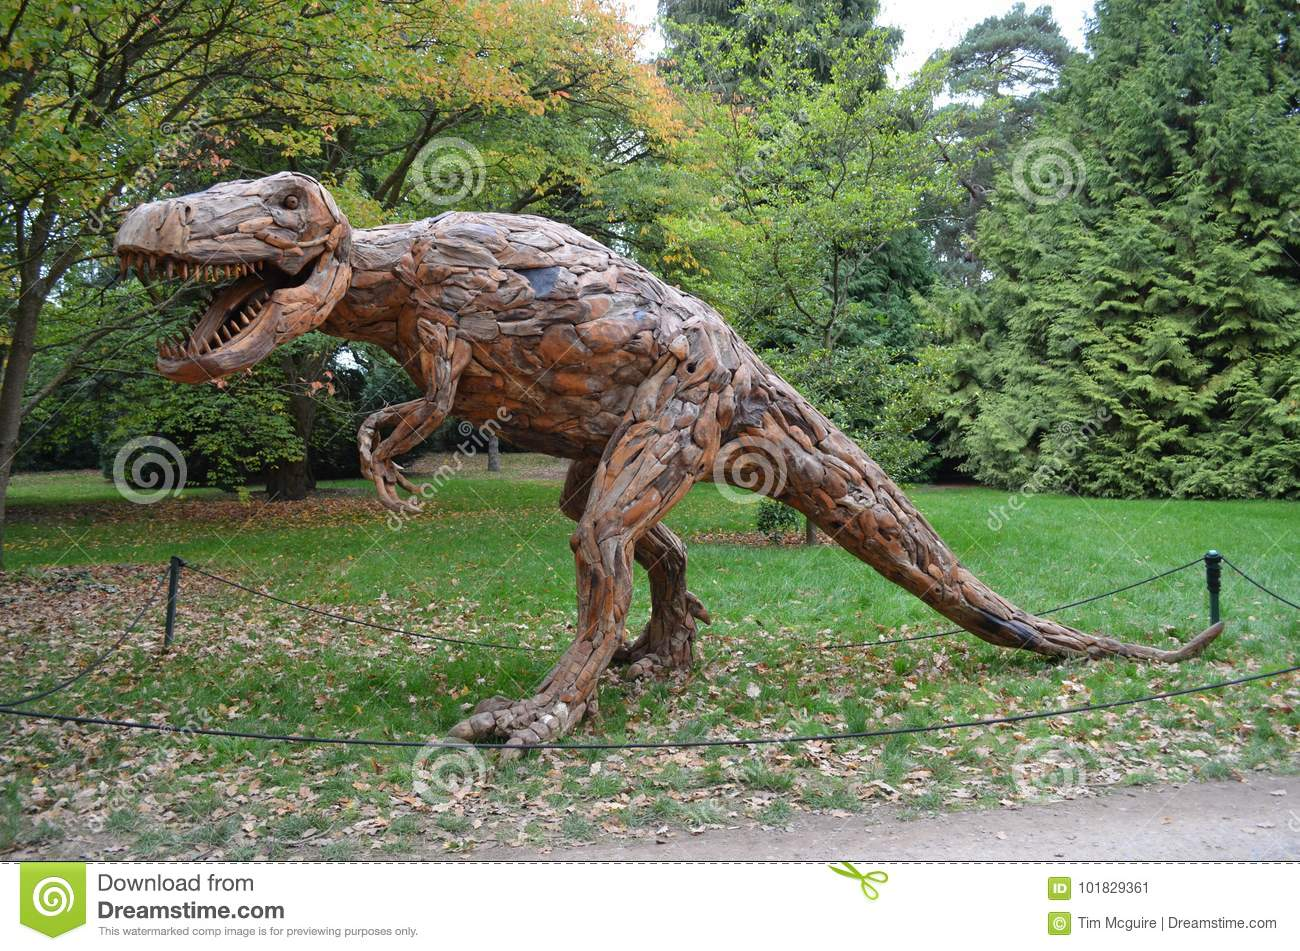 Wood Sculpture Of A T Rex Dinosaur At RHS Wisley Garden, Surrey